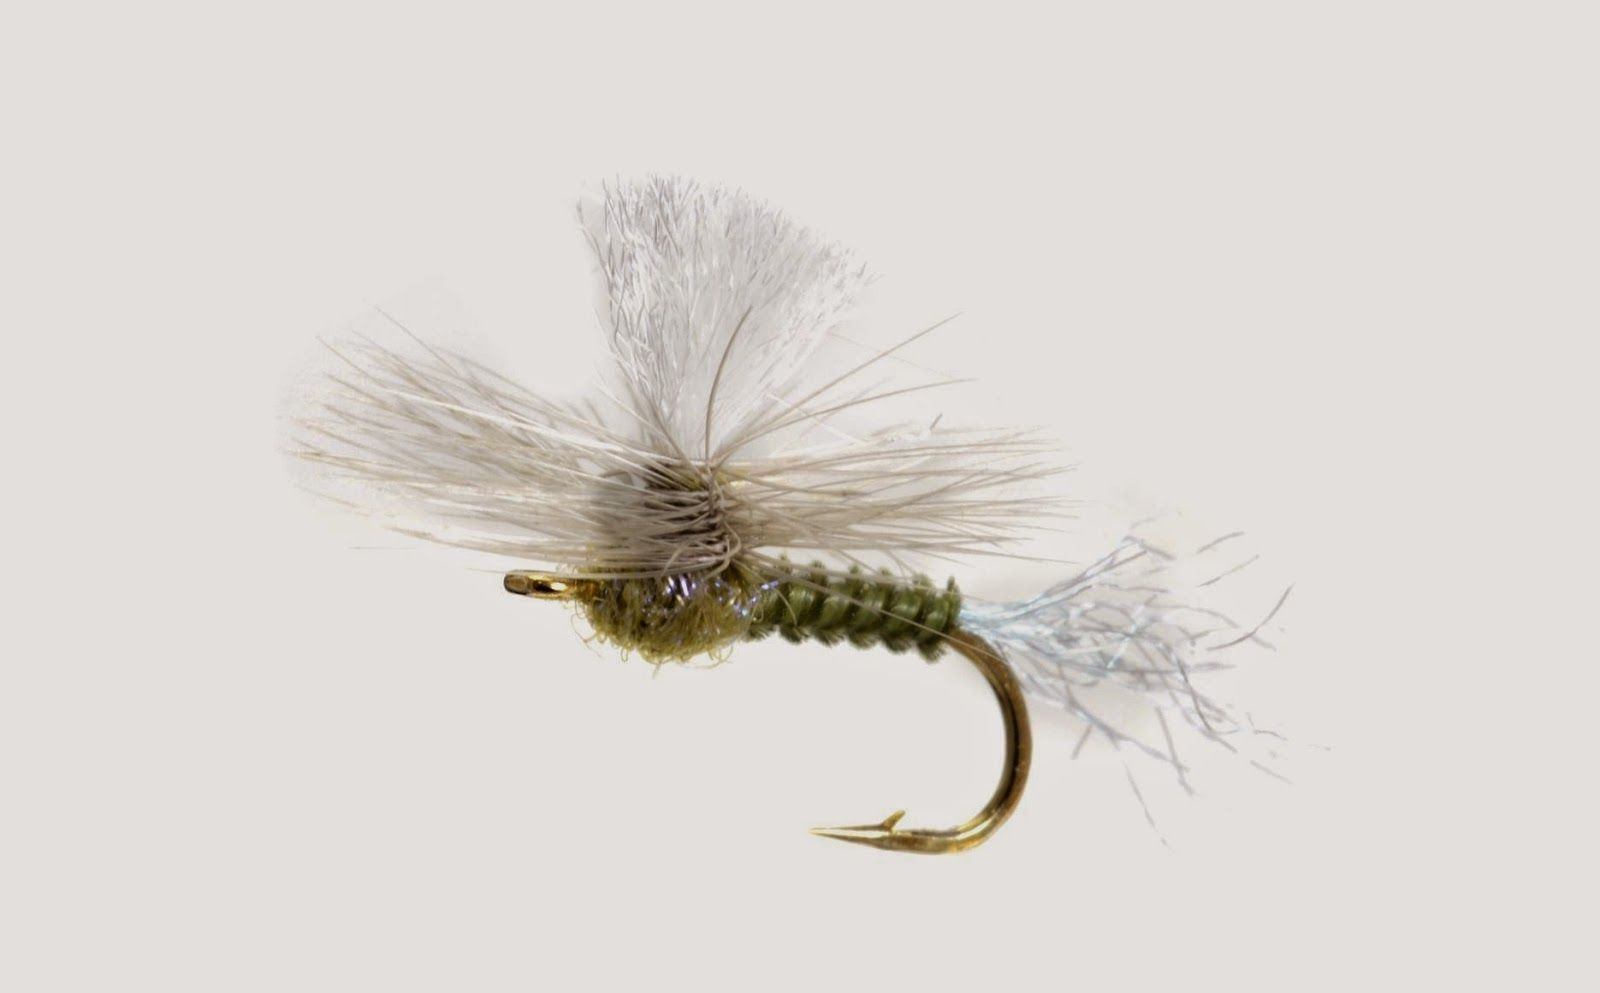 Dry Fly Tutorials Fly Fish Food Fly Tying and Fly